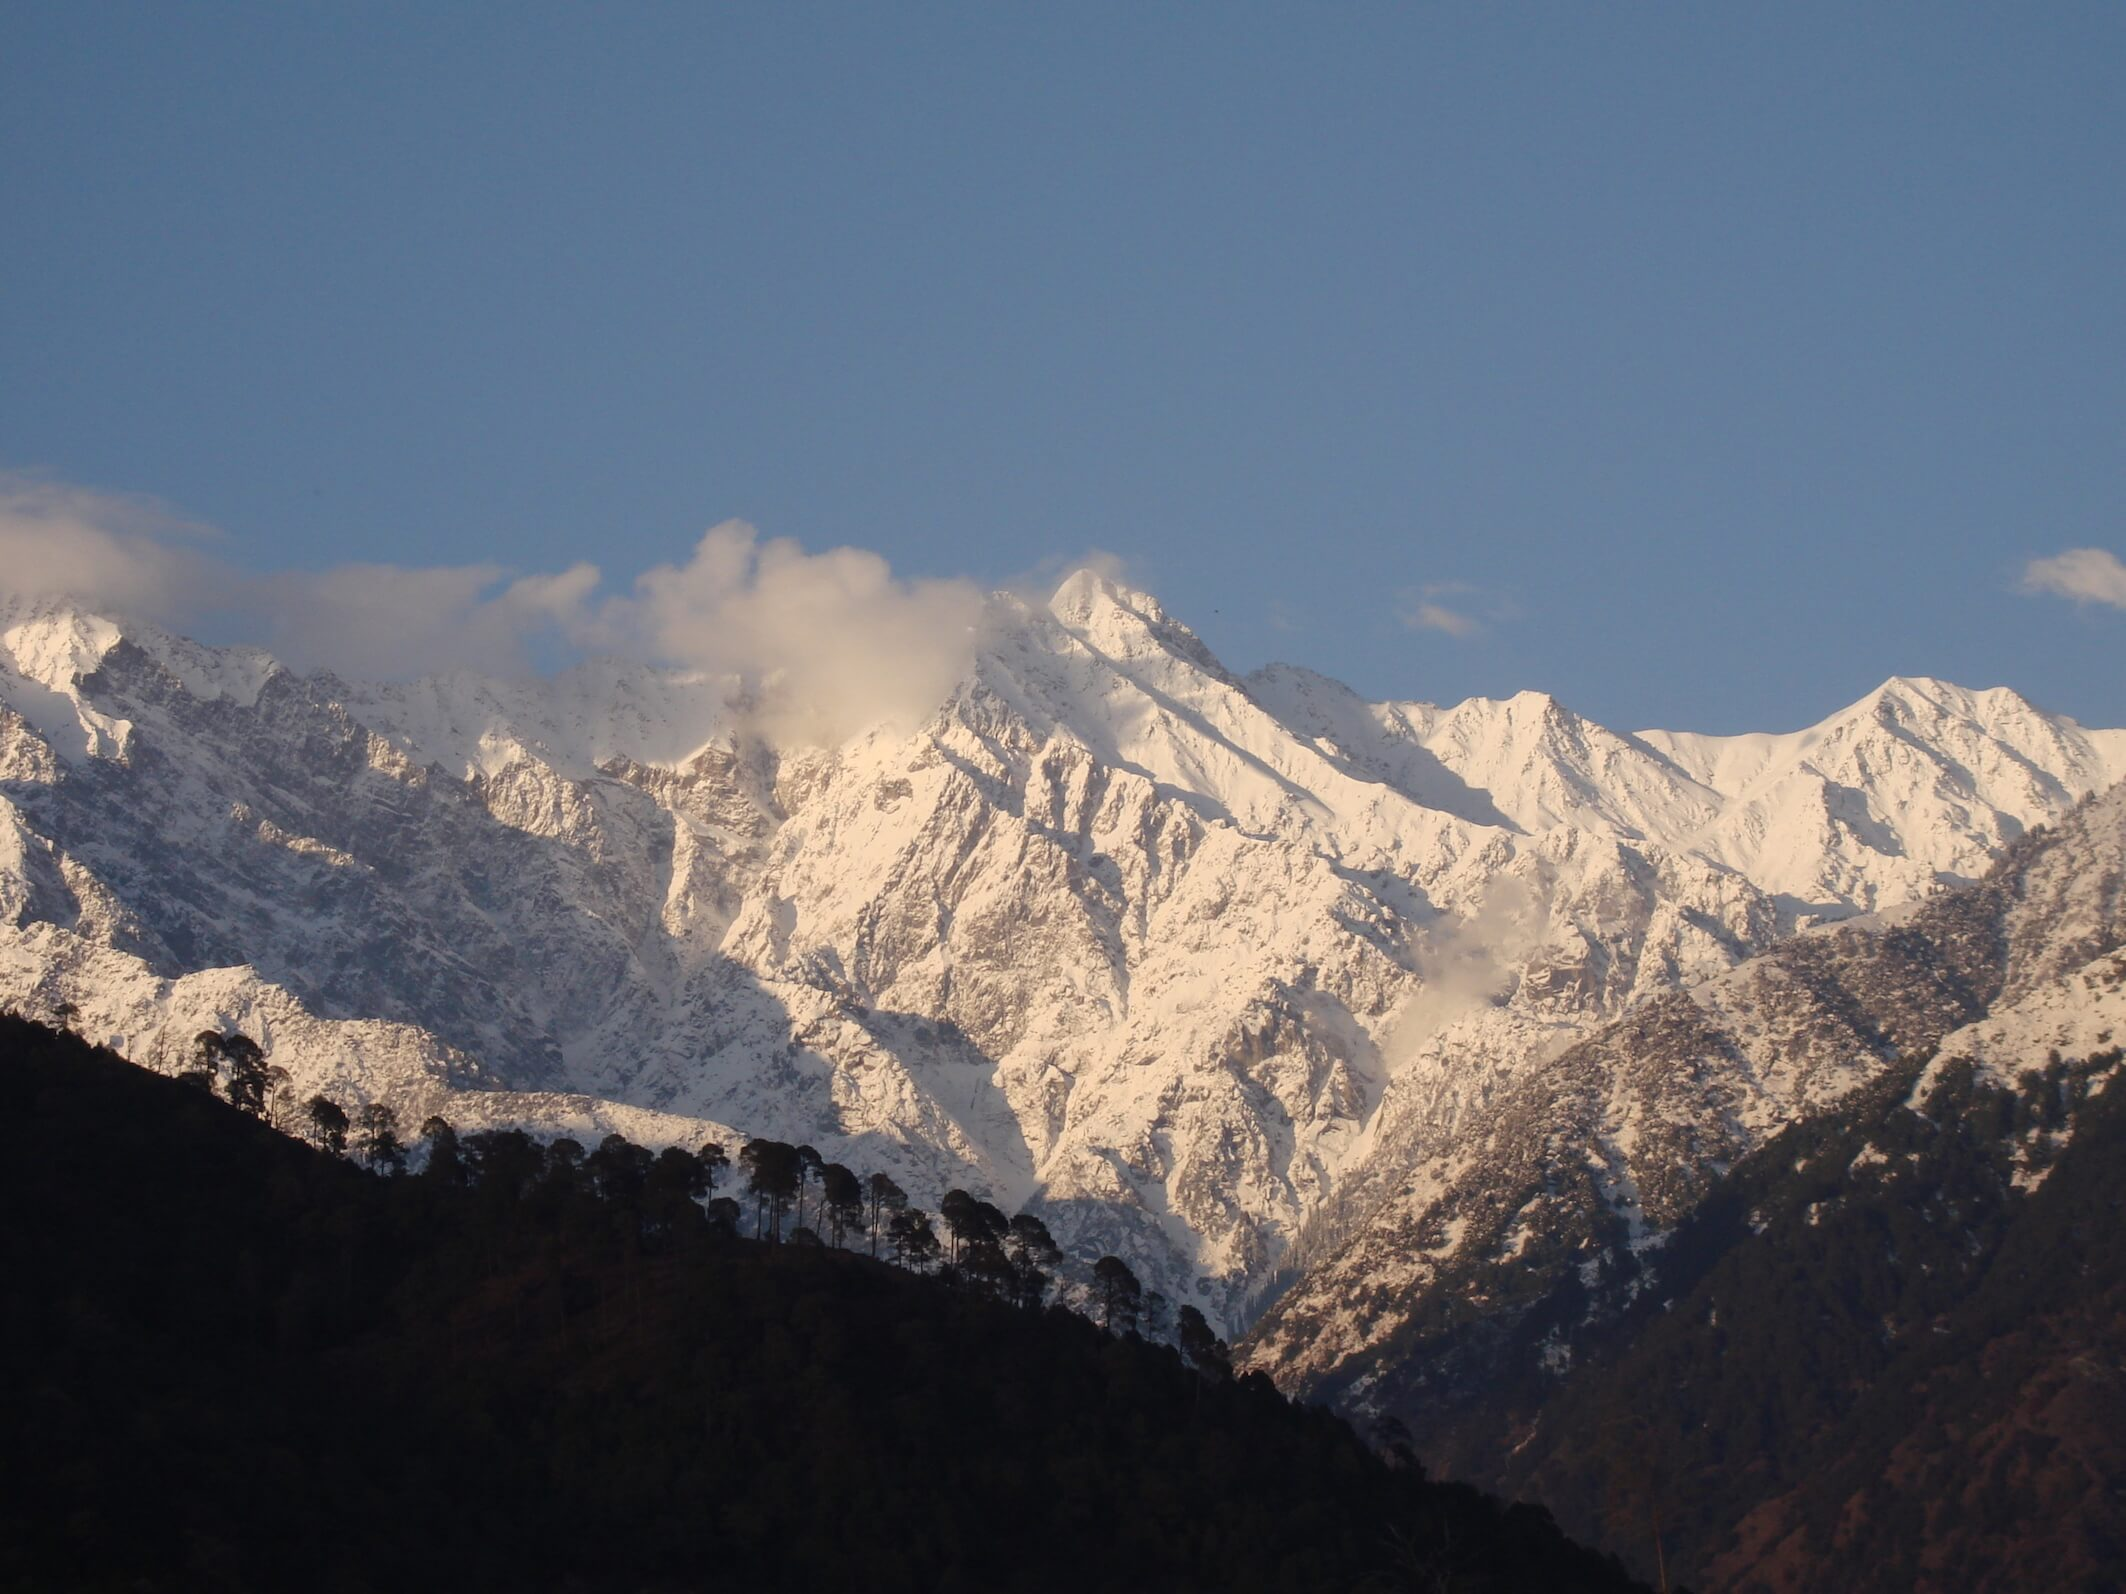 The snow-capped Dhauladhar range